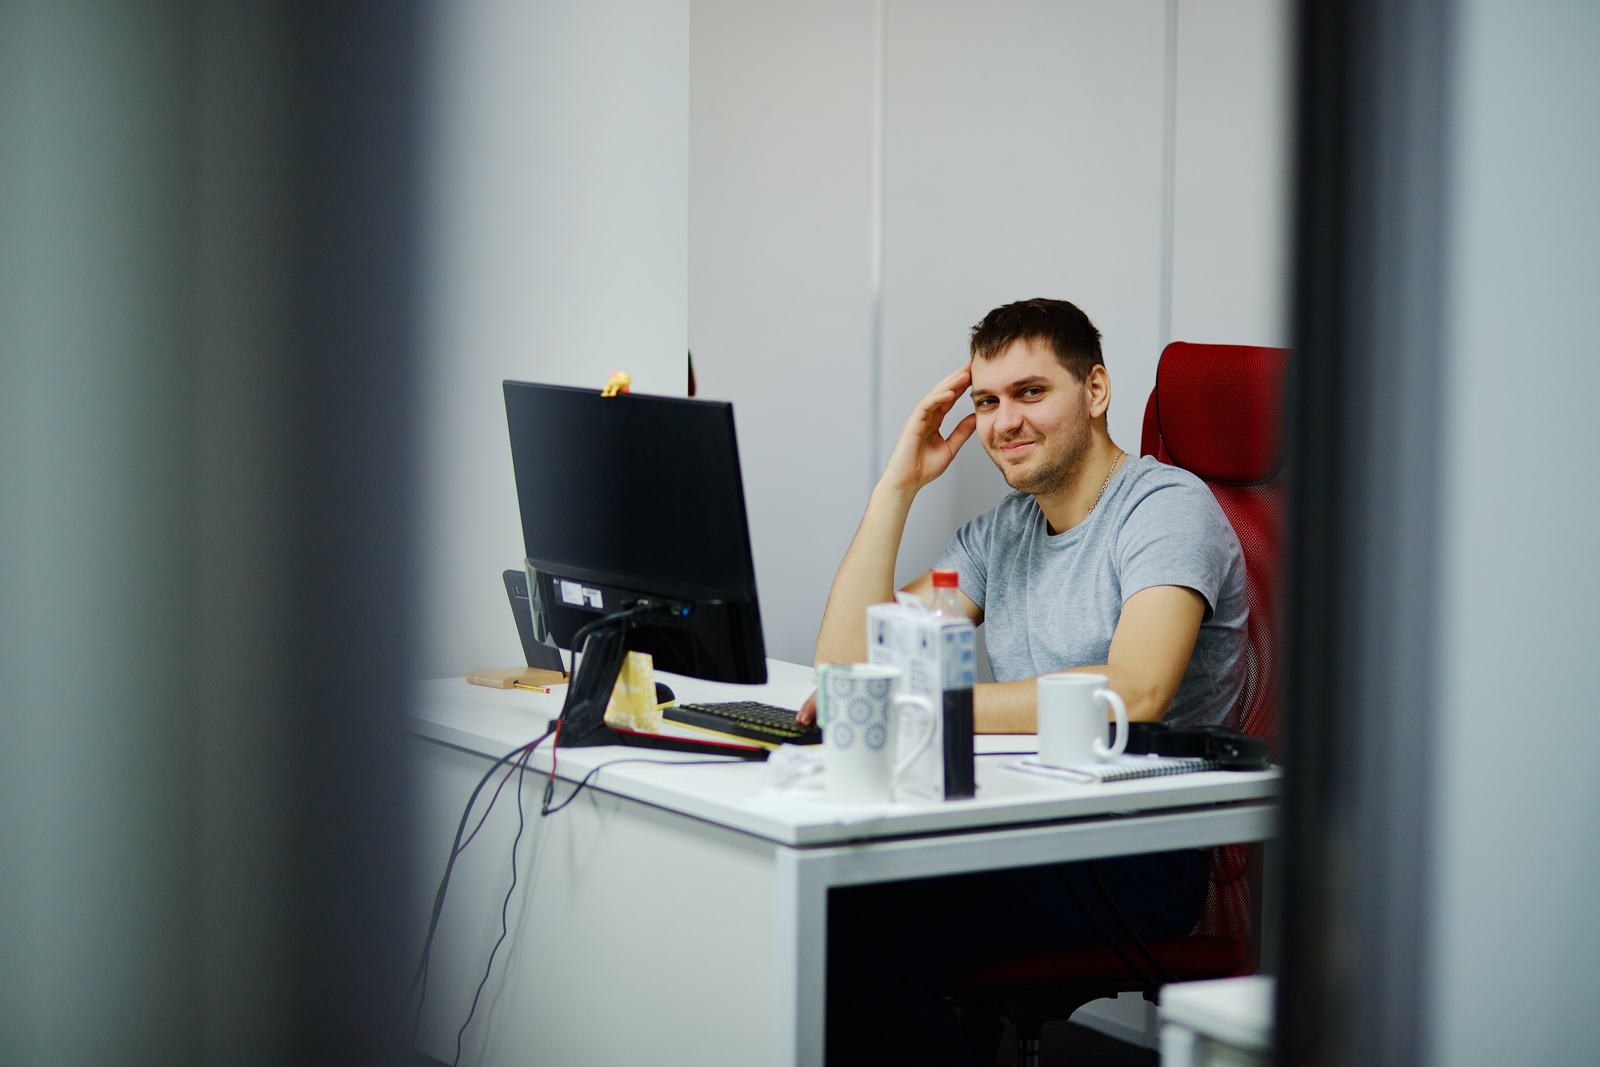 Guy and office routine